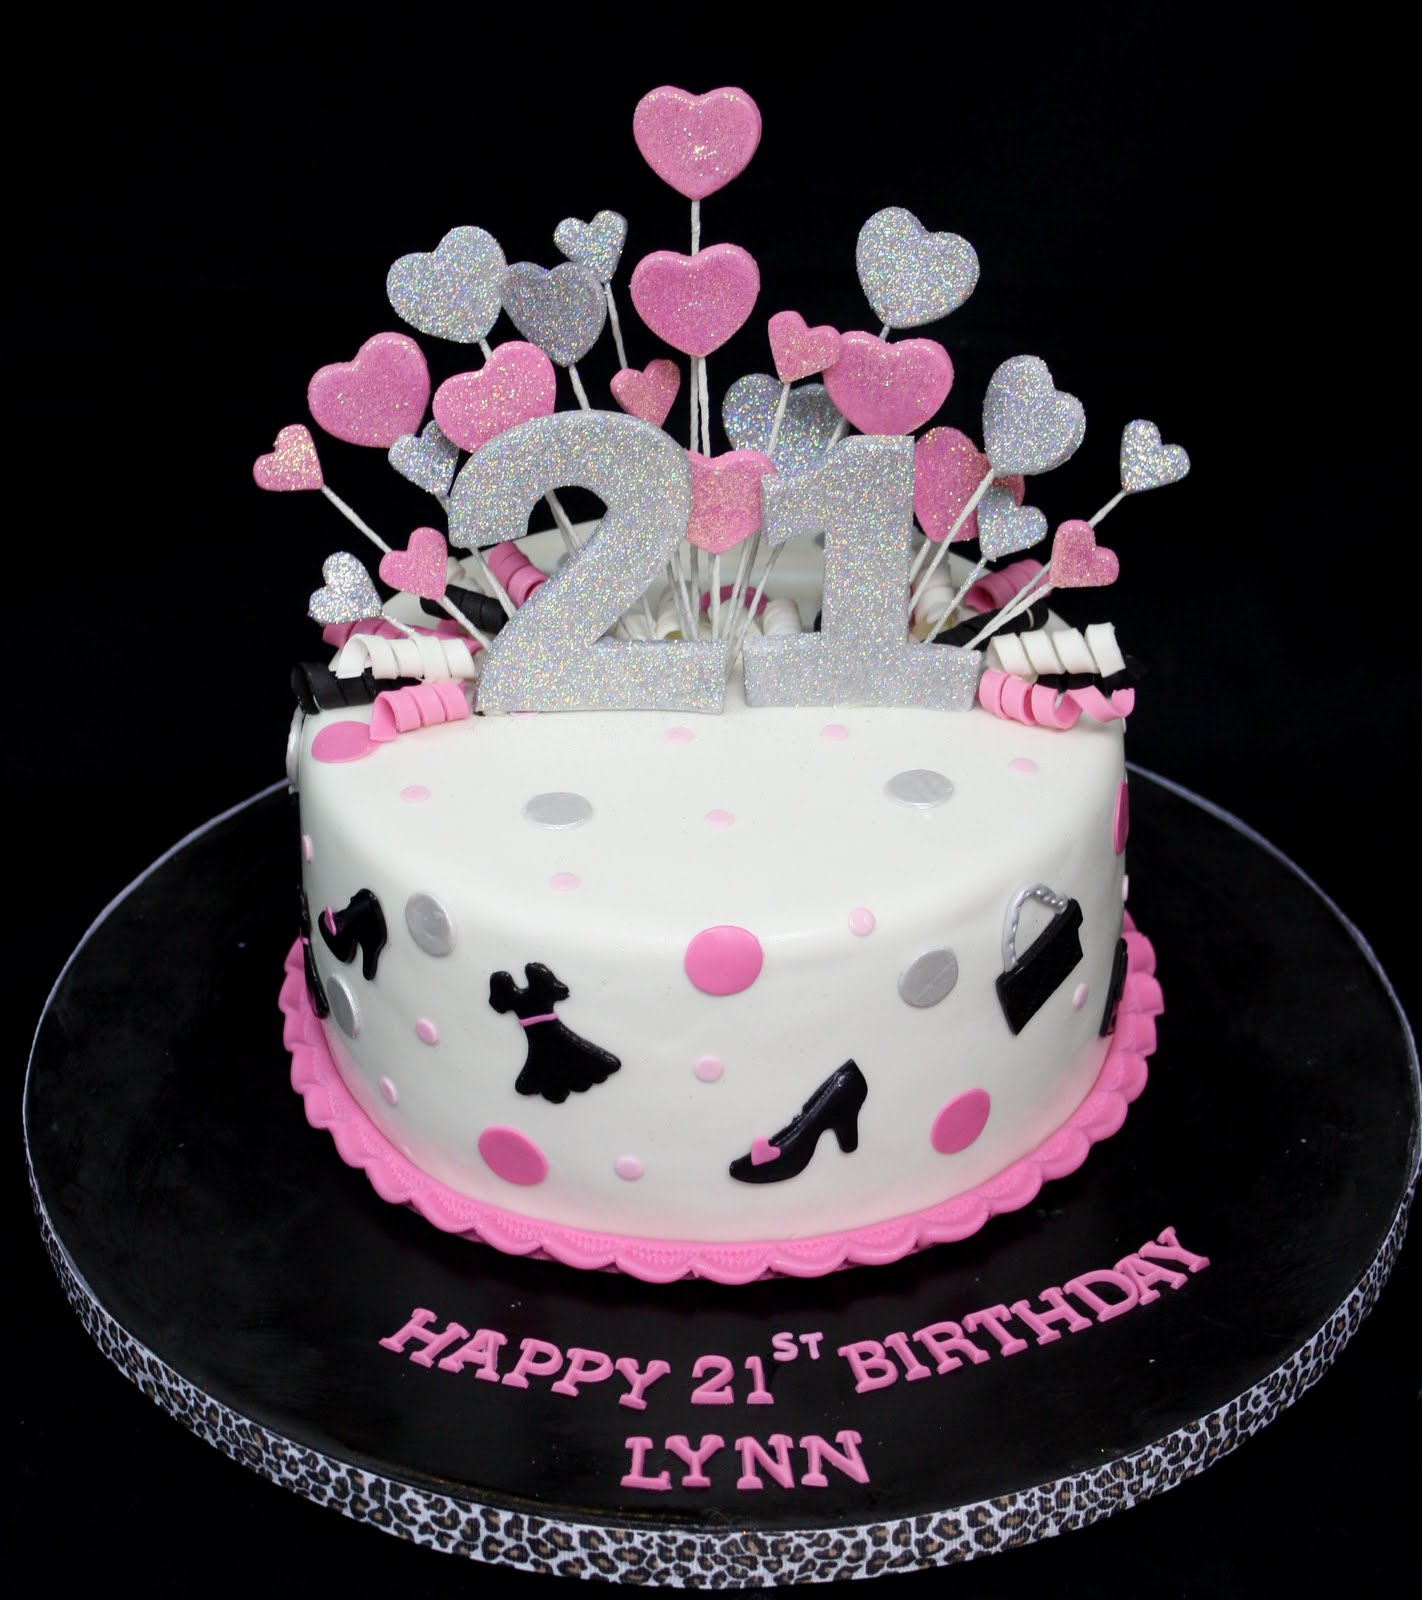 Enjoyable 21 Birthday Cakes For Her 21St Birthday Cakes Decoration Ideas Personalised Birthday Cards Veneteletsinfo